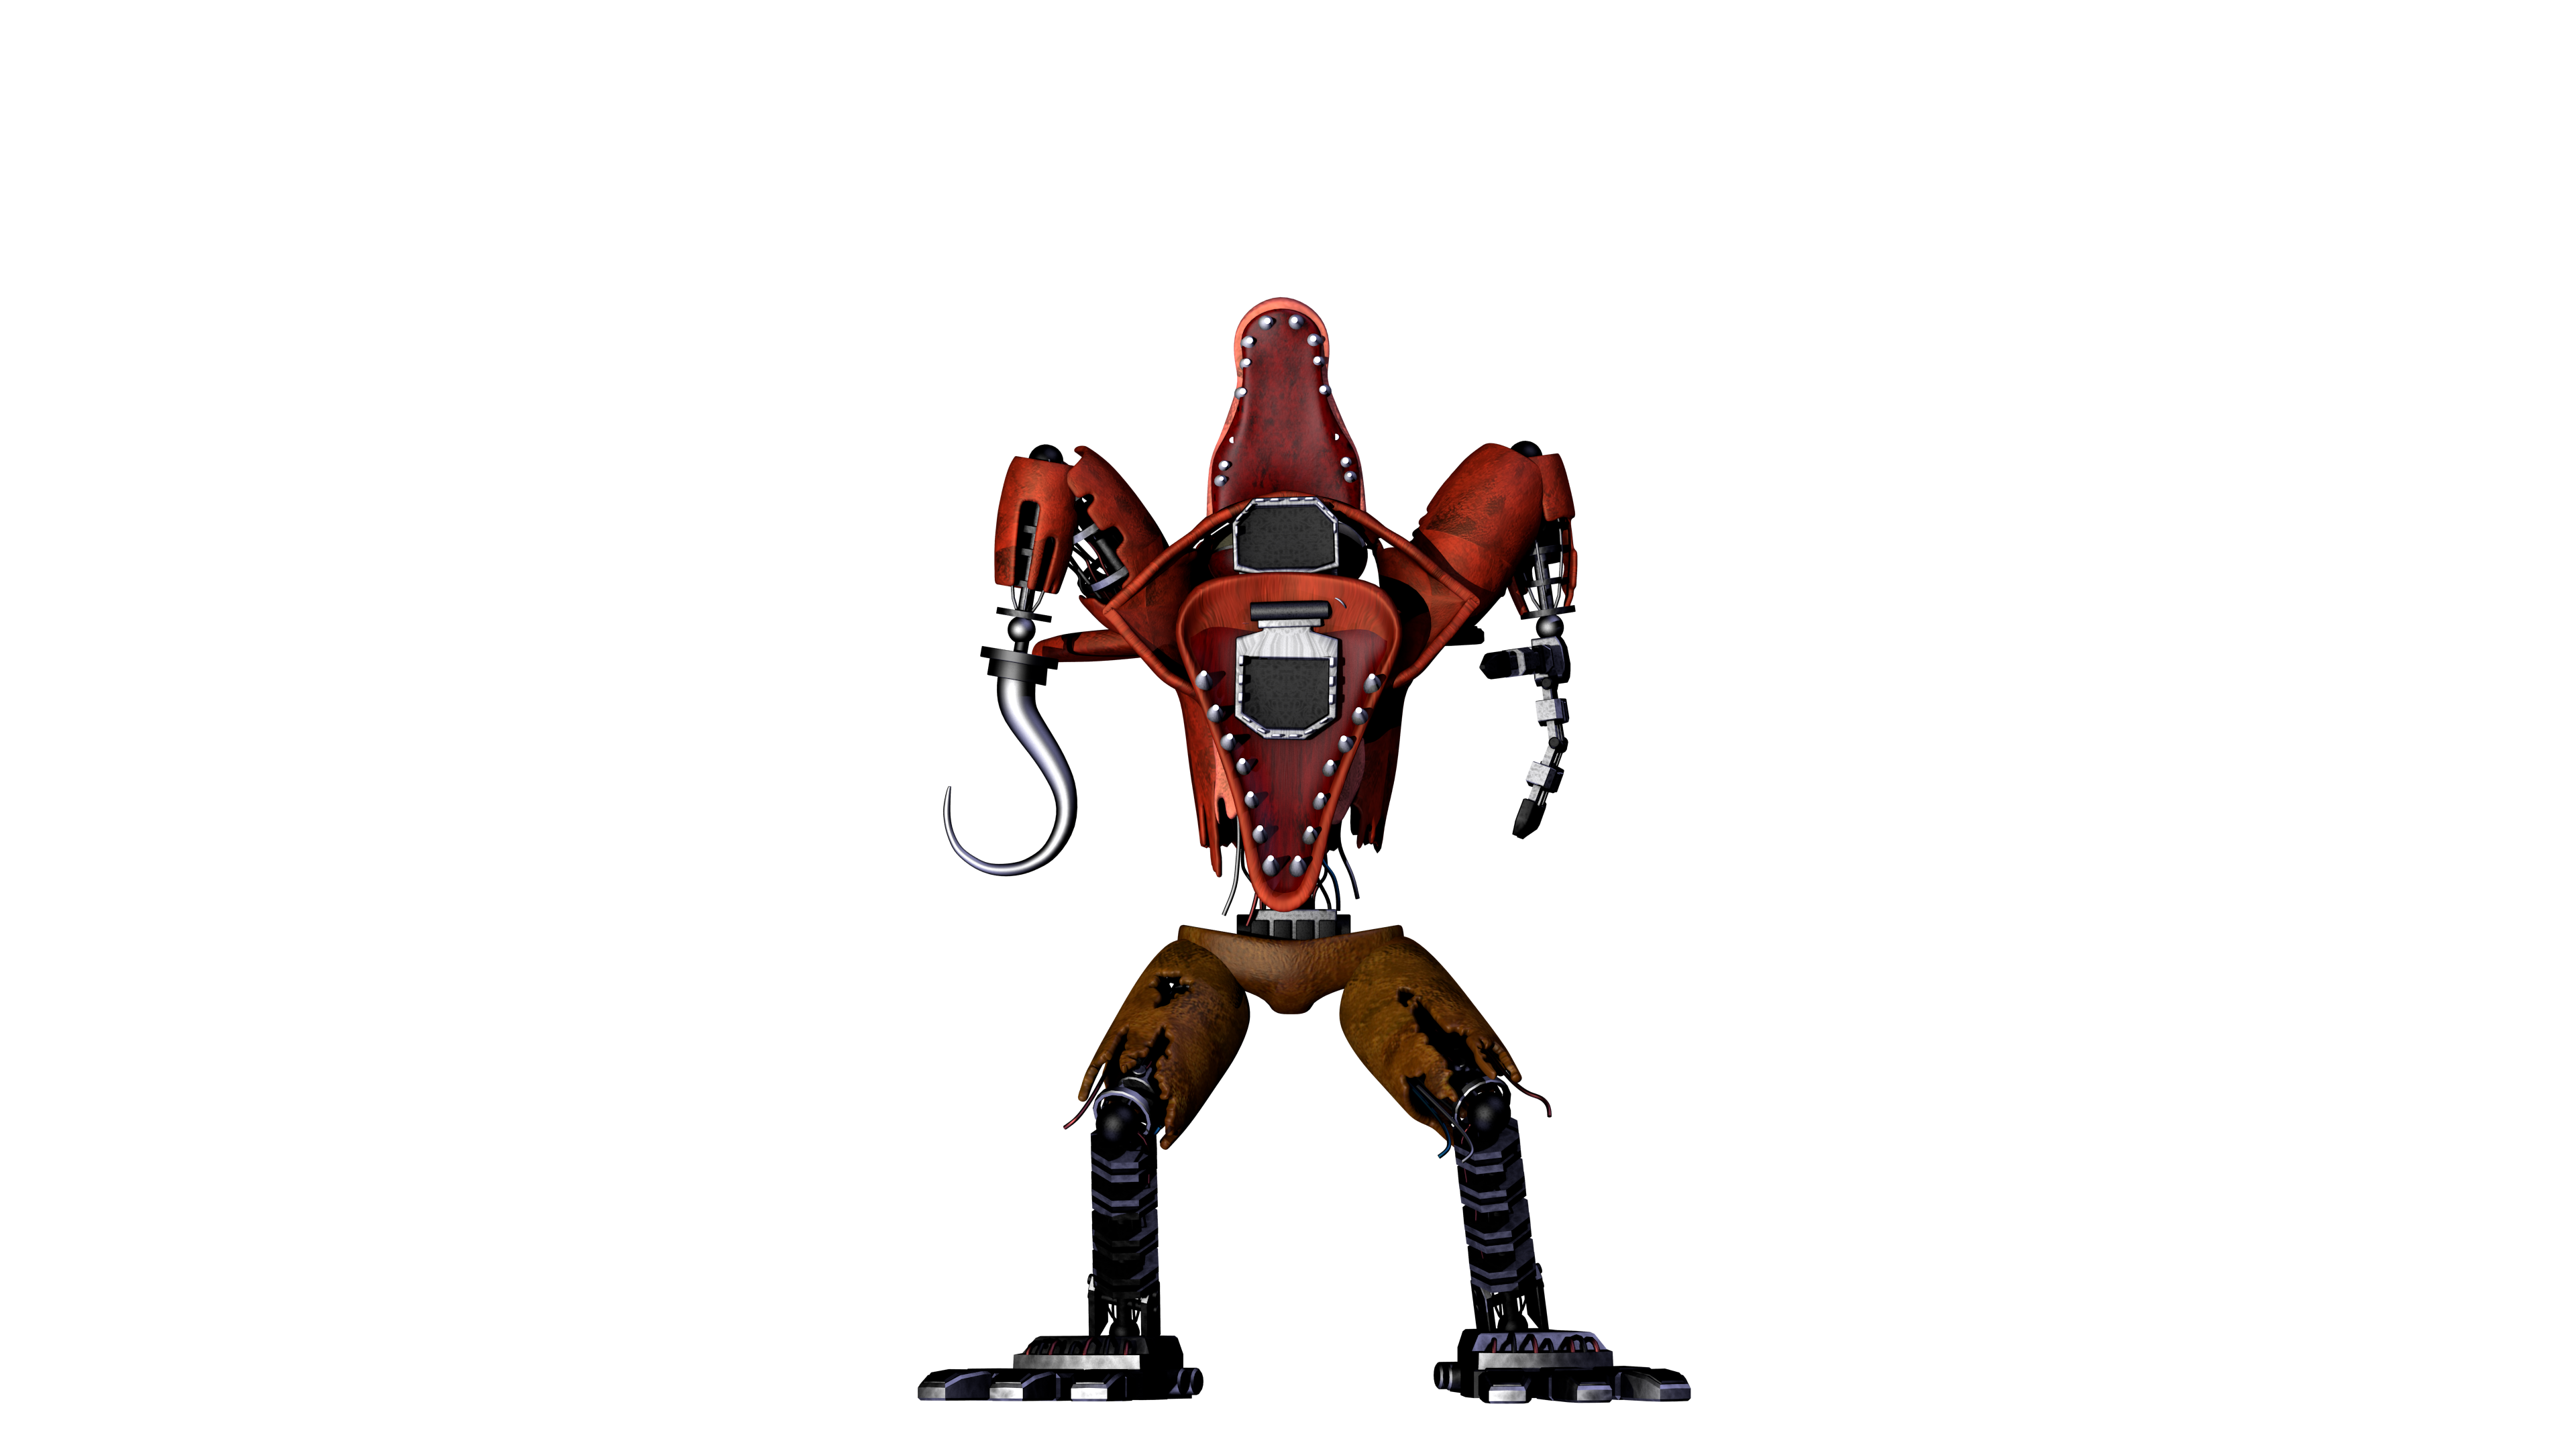 Transparent fnaf animatronic. Withered animatronics renders album